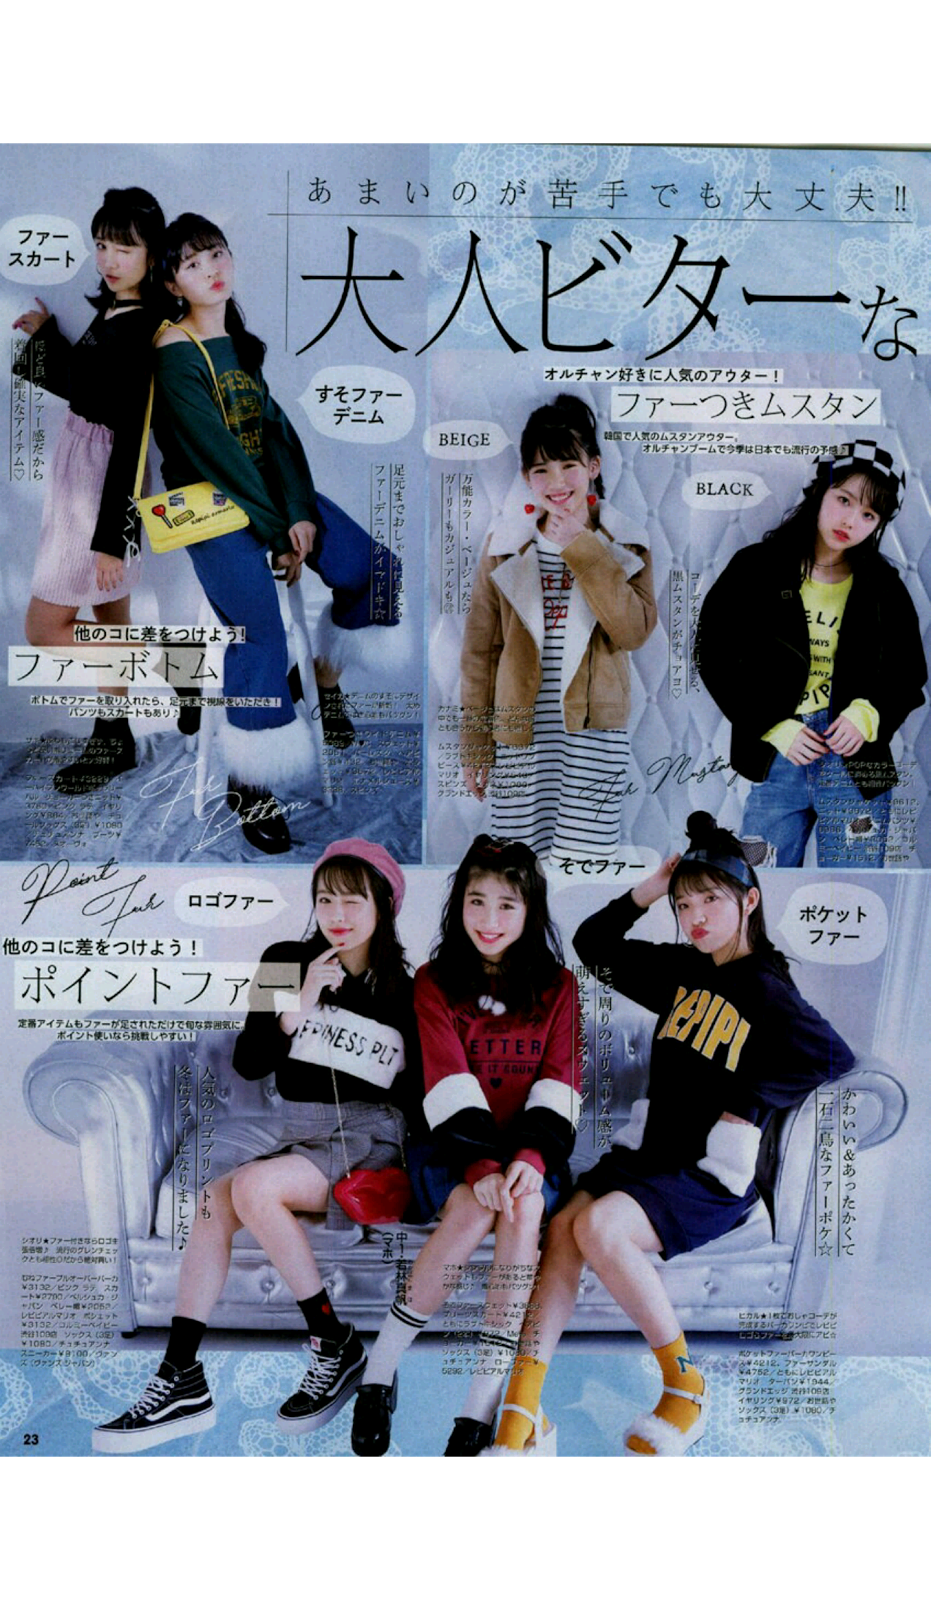 Nicola Japanese Fashion Magazine Scans